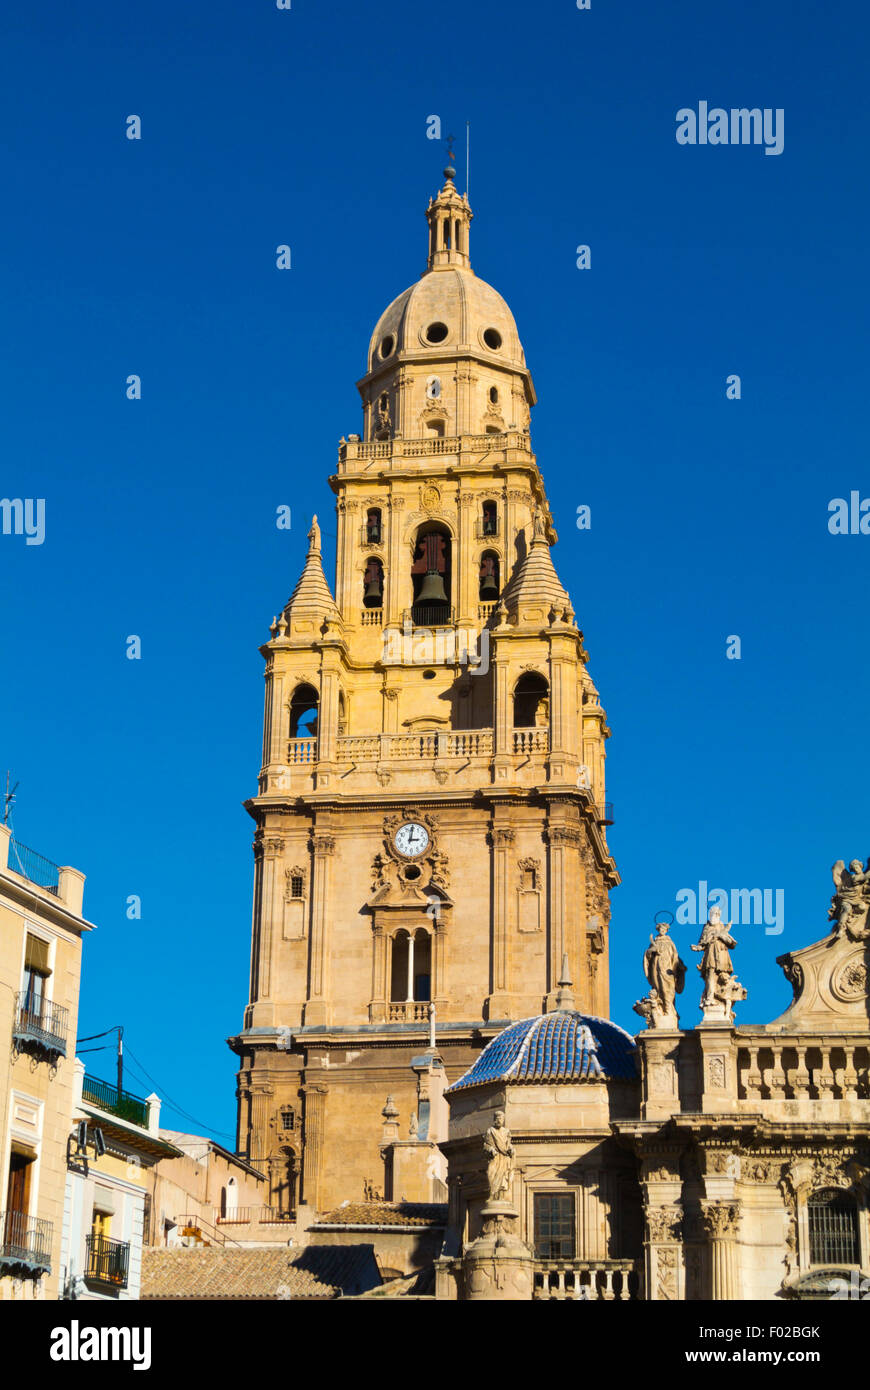 Tower, Catedral, the Cathedral church, Plaza del Cardenal Belluga square, old town, Murcia, Spain - Stock Image